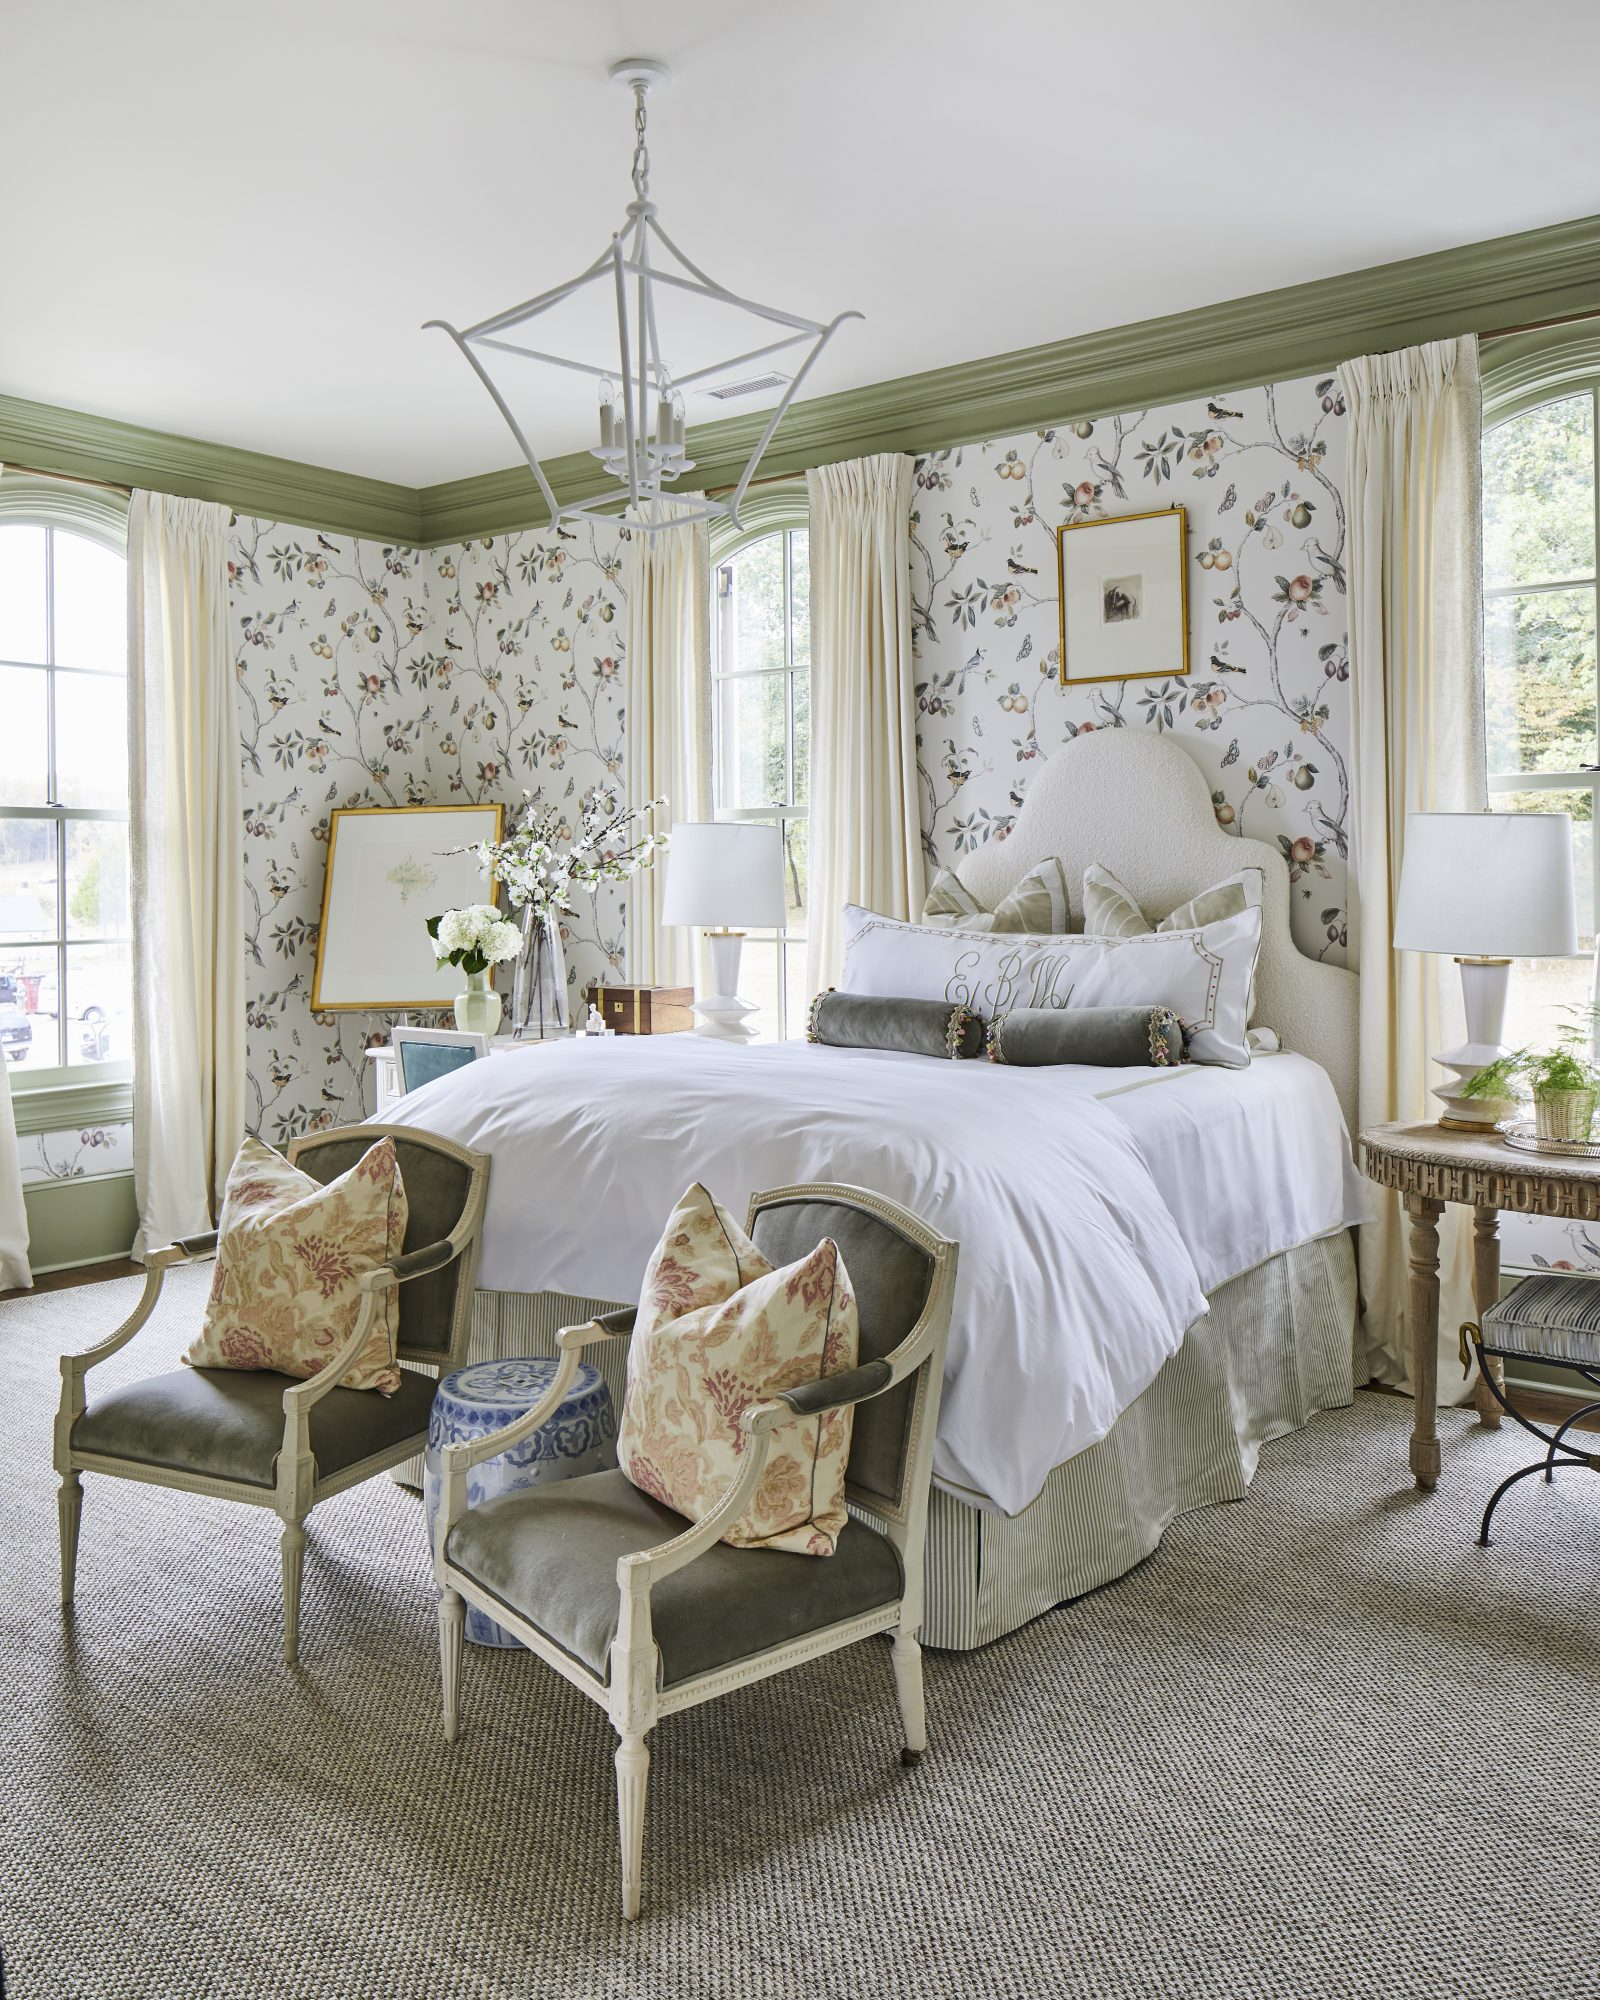 Bedroom with Aviary Wallpaper in Green and White